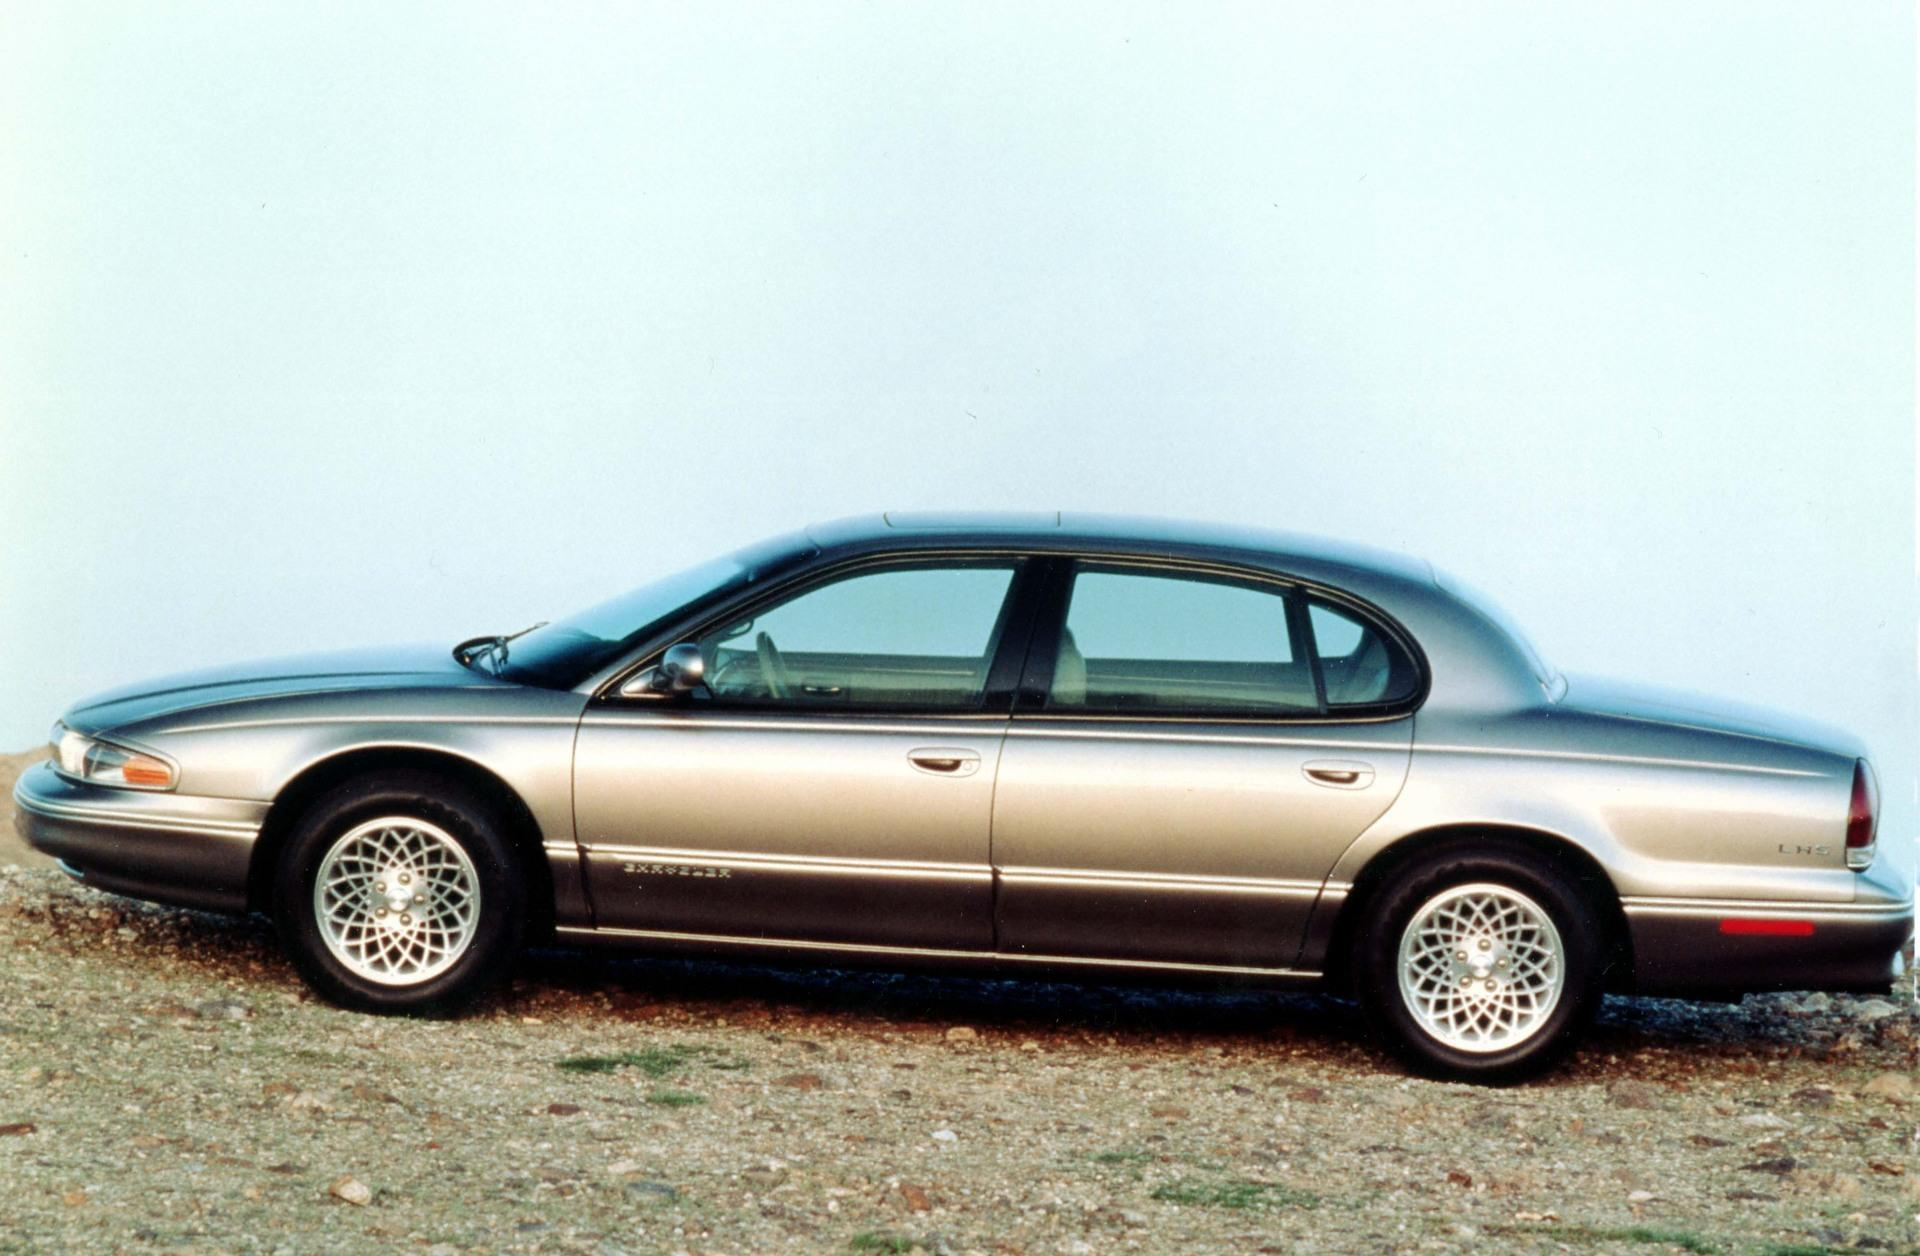 1994 chrysler lhs pictures history value research news conceptcarz com